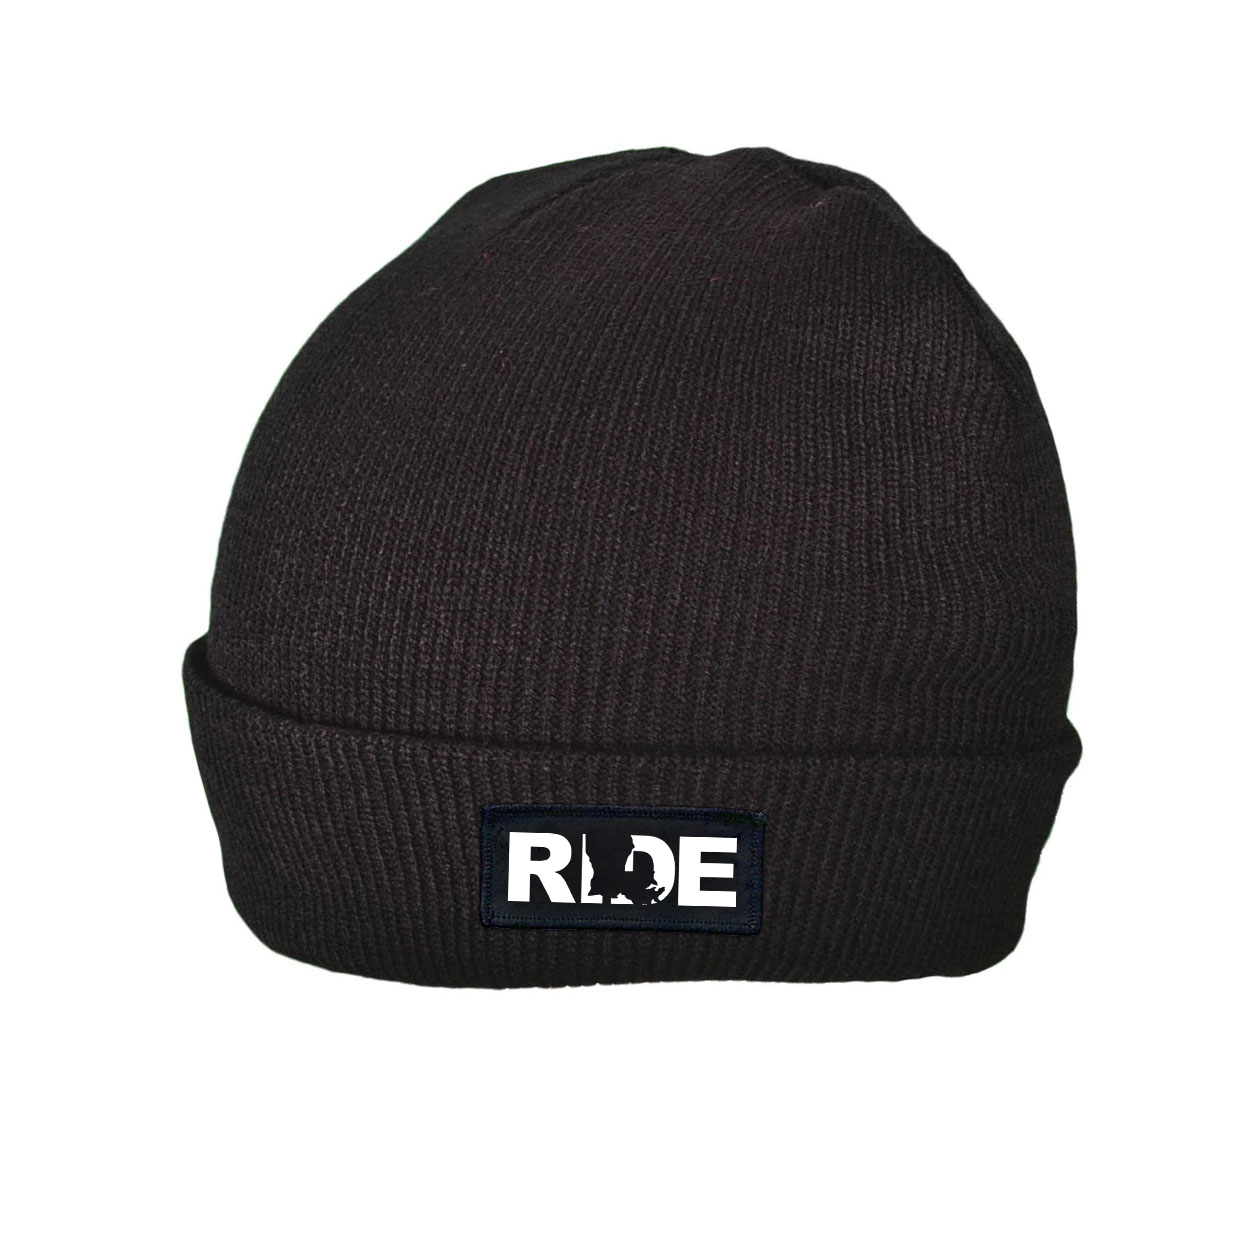 Ride Louisiana Night Out Woven Patch Skully Youth Beanie Black (White Logo)